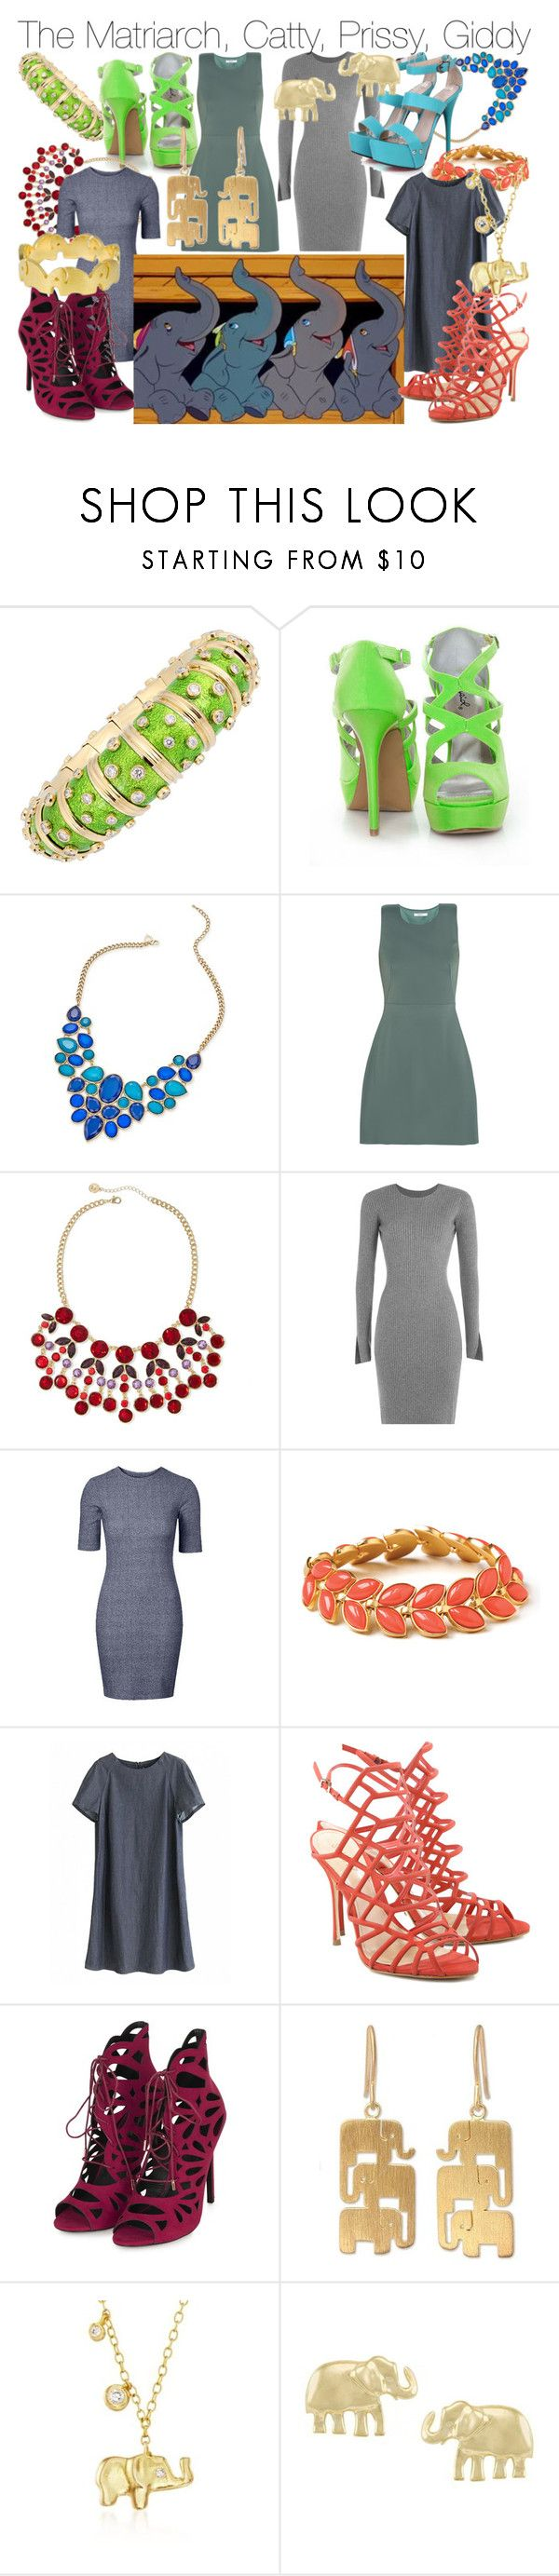 """""""Group Bound - The Elephants"""" by fabulousgurl ❤ liked on Polyvore featuring Tiffany & Co., Qupid, Thalia Sodi, Bailey 44, Liz Claiborne, Alexander Wang, Spartina 449, Schutz, Topshop and NOVICA"""